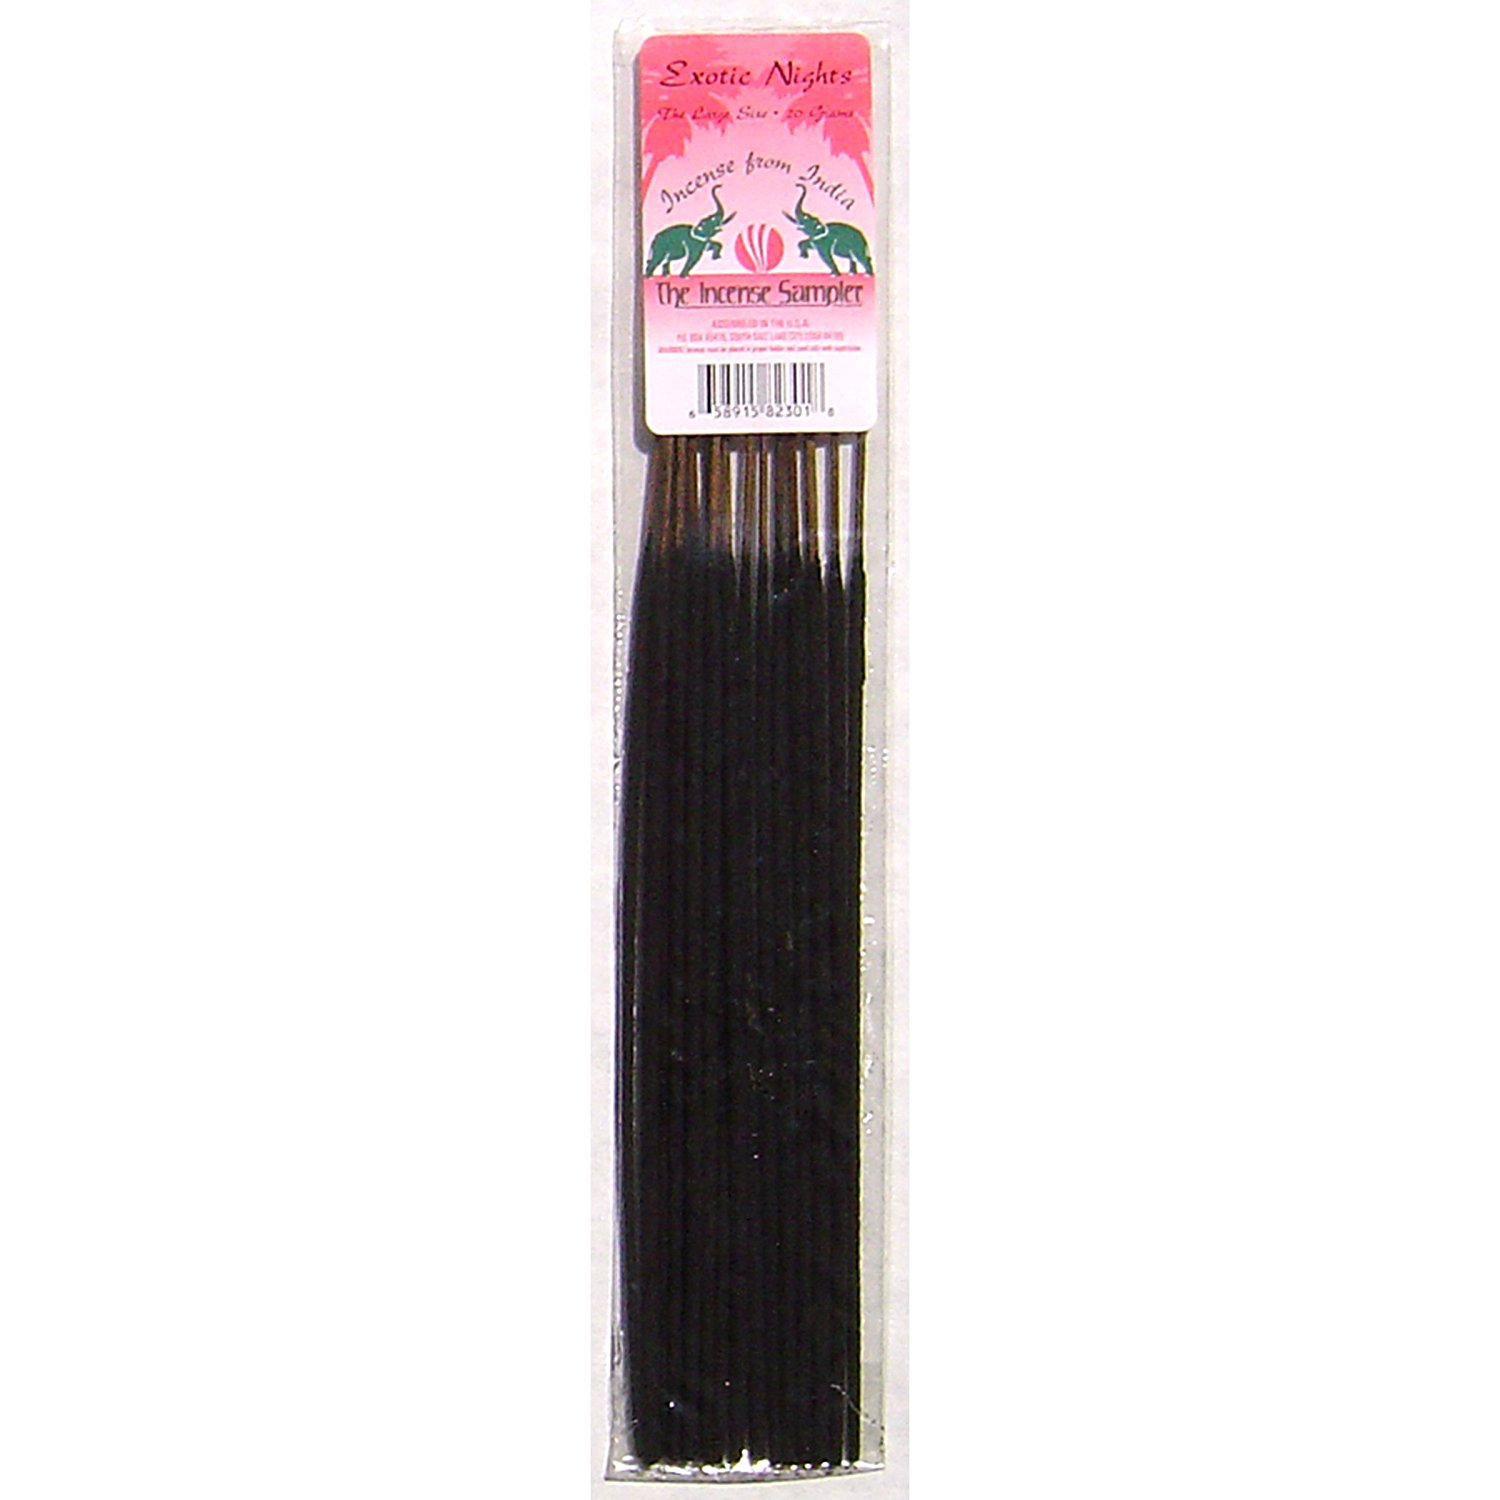 Exotic Nights - Incense From India - 20g Package